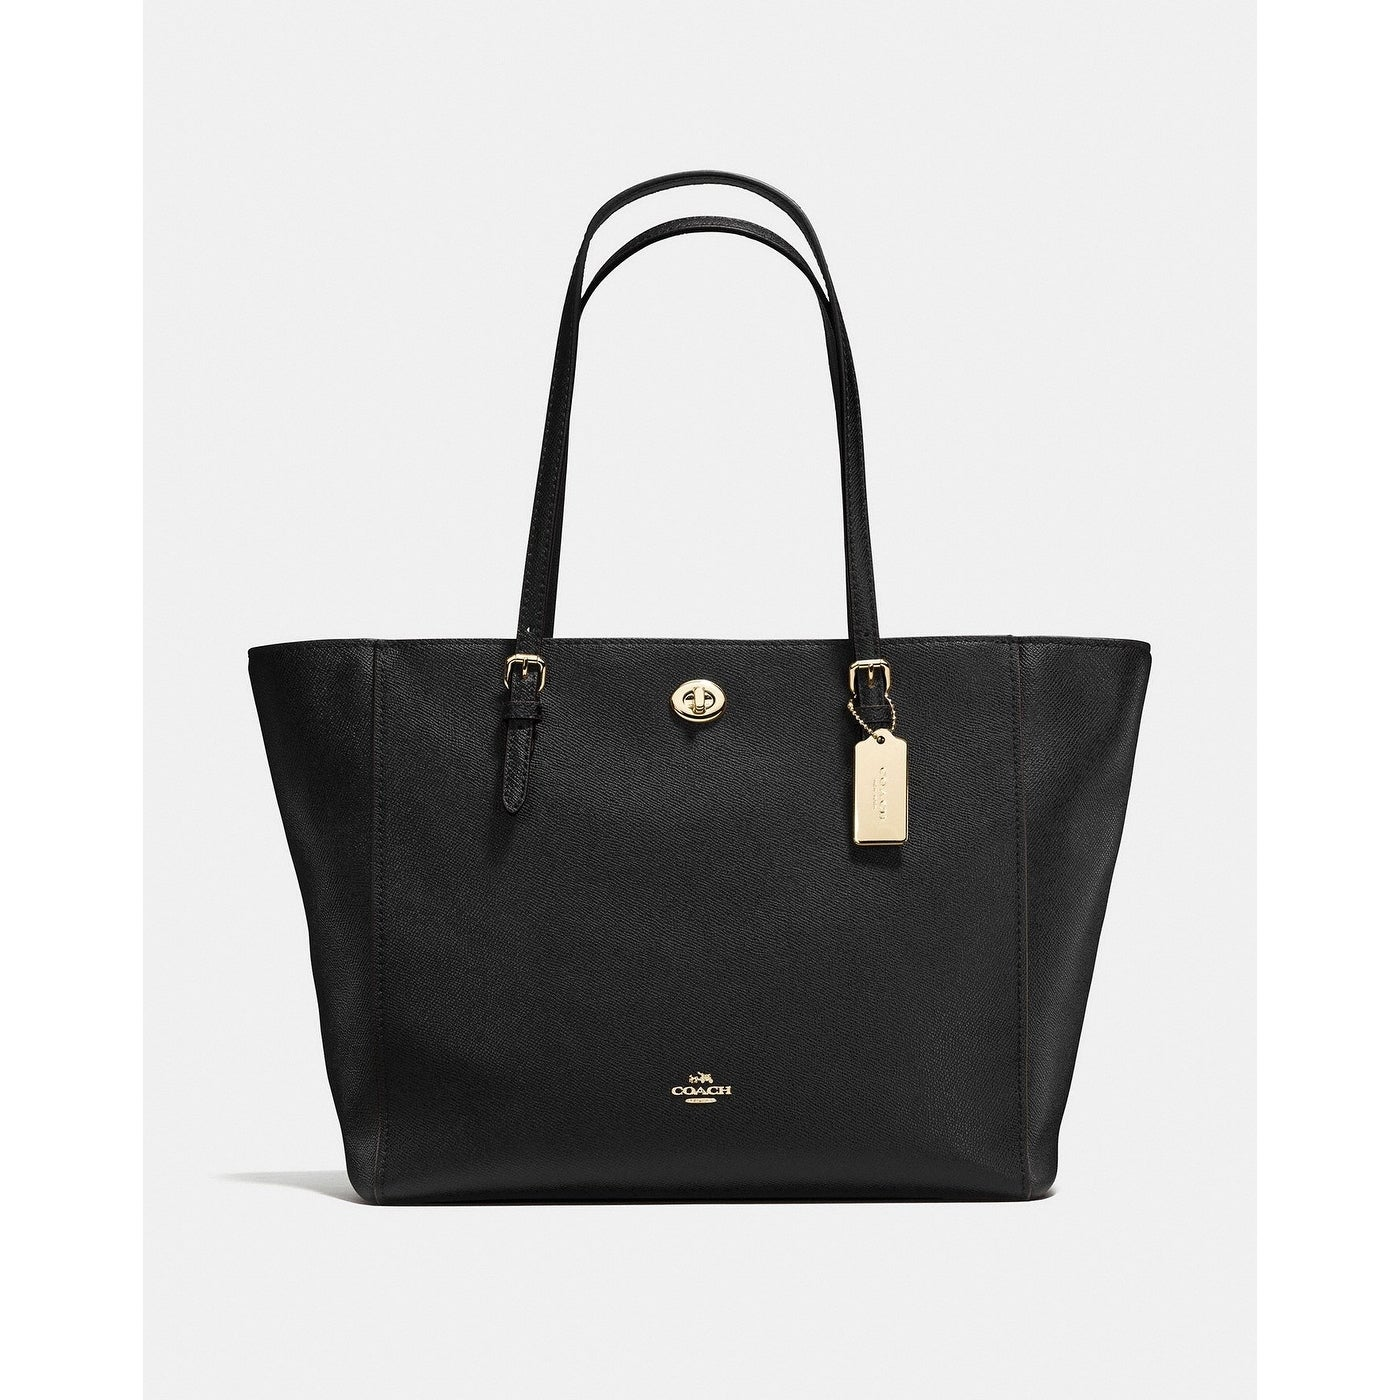 a02406058bbb ... promo code for coach turnlock tote black ac55d 57237